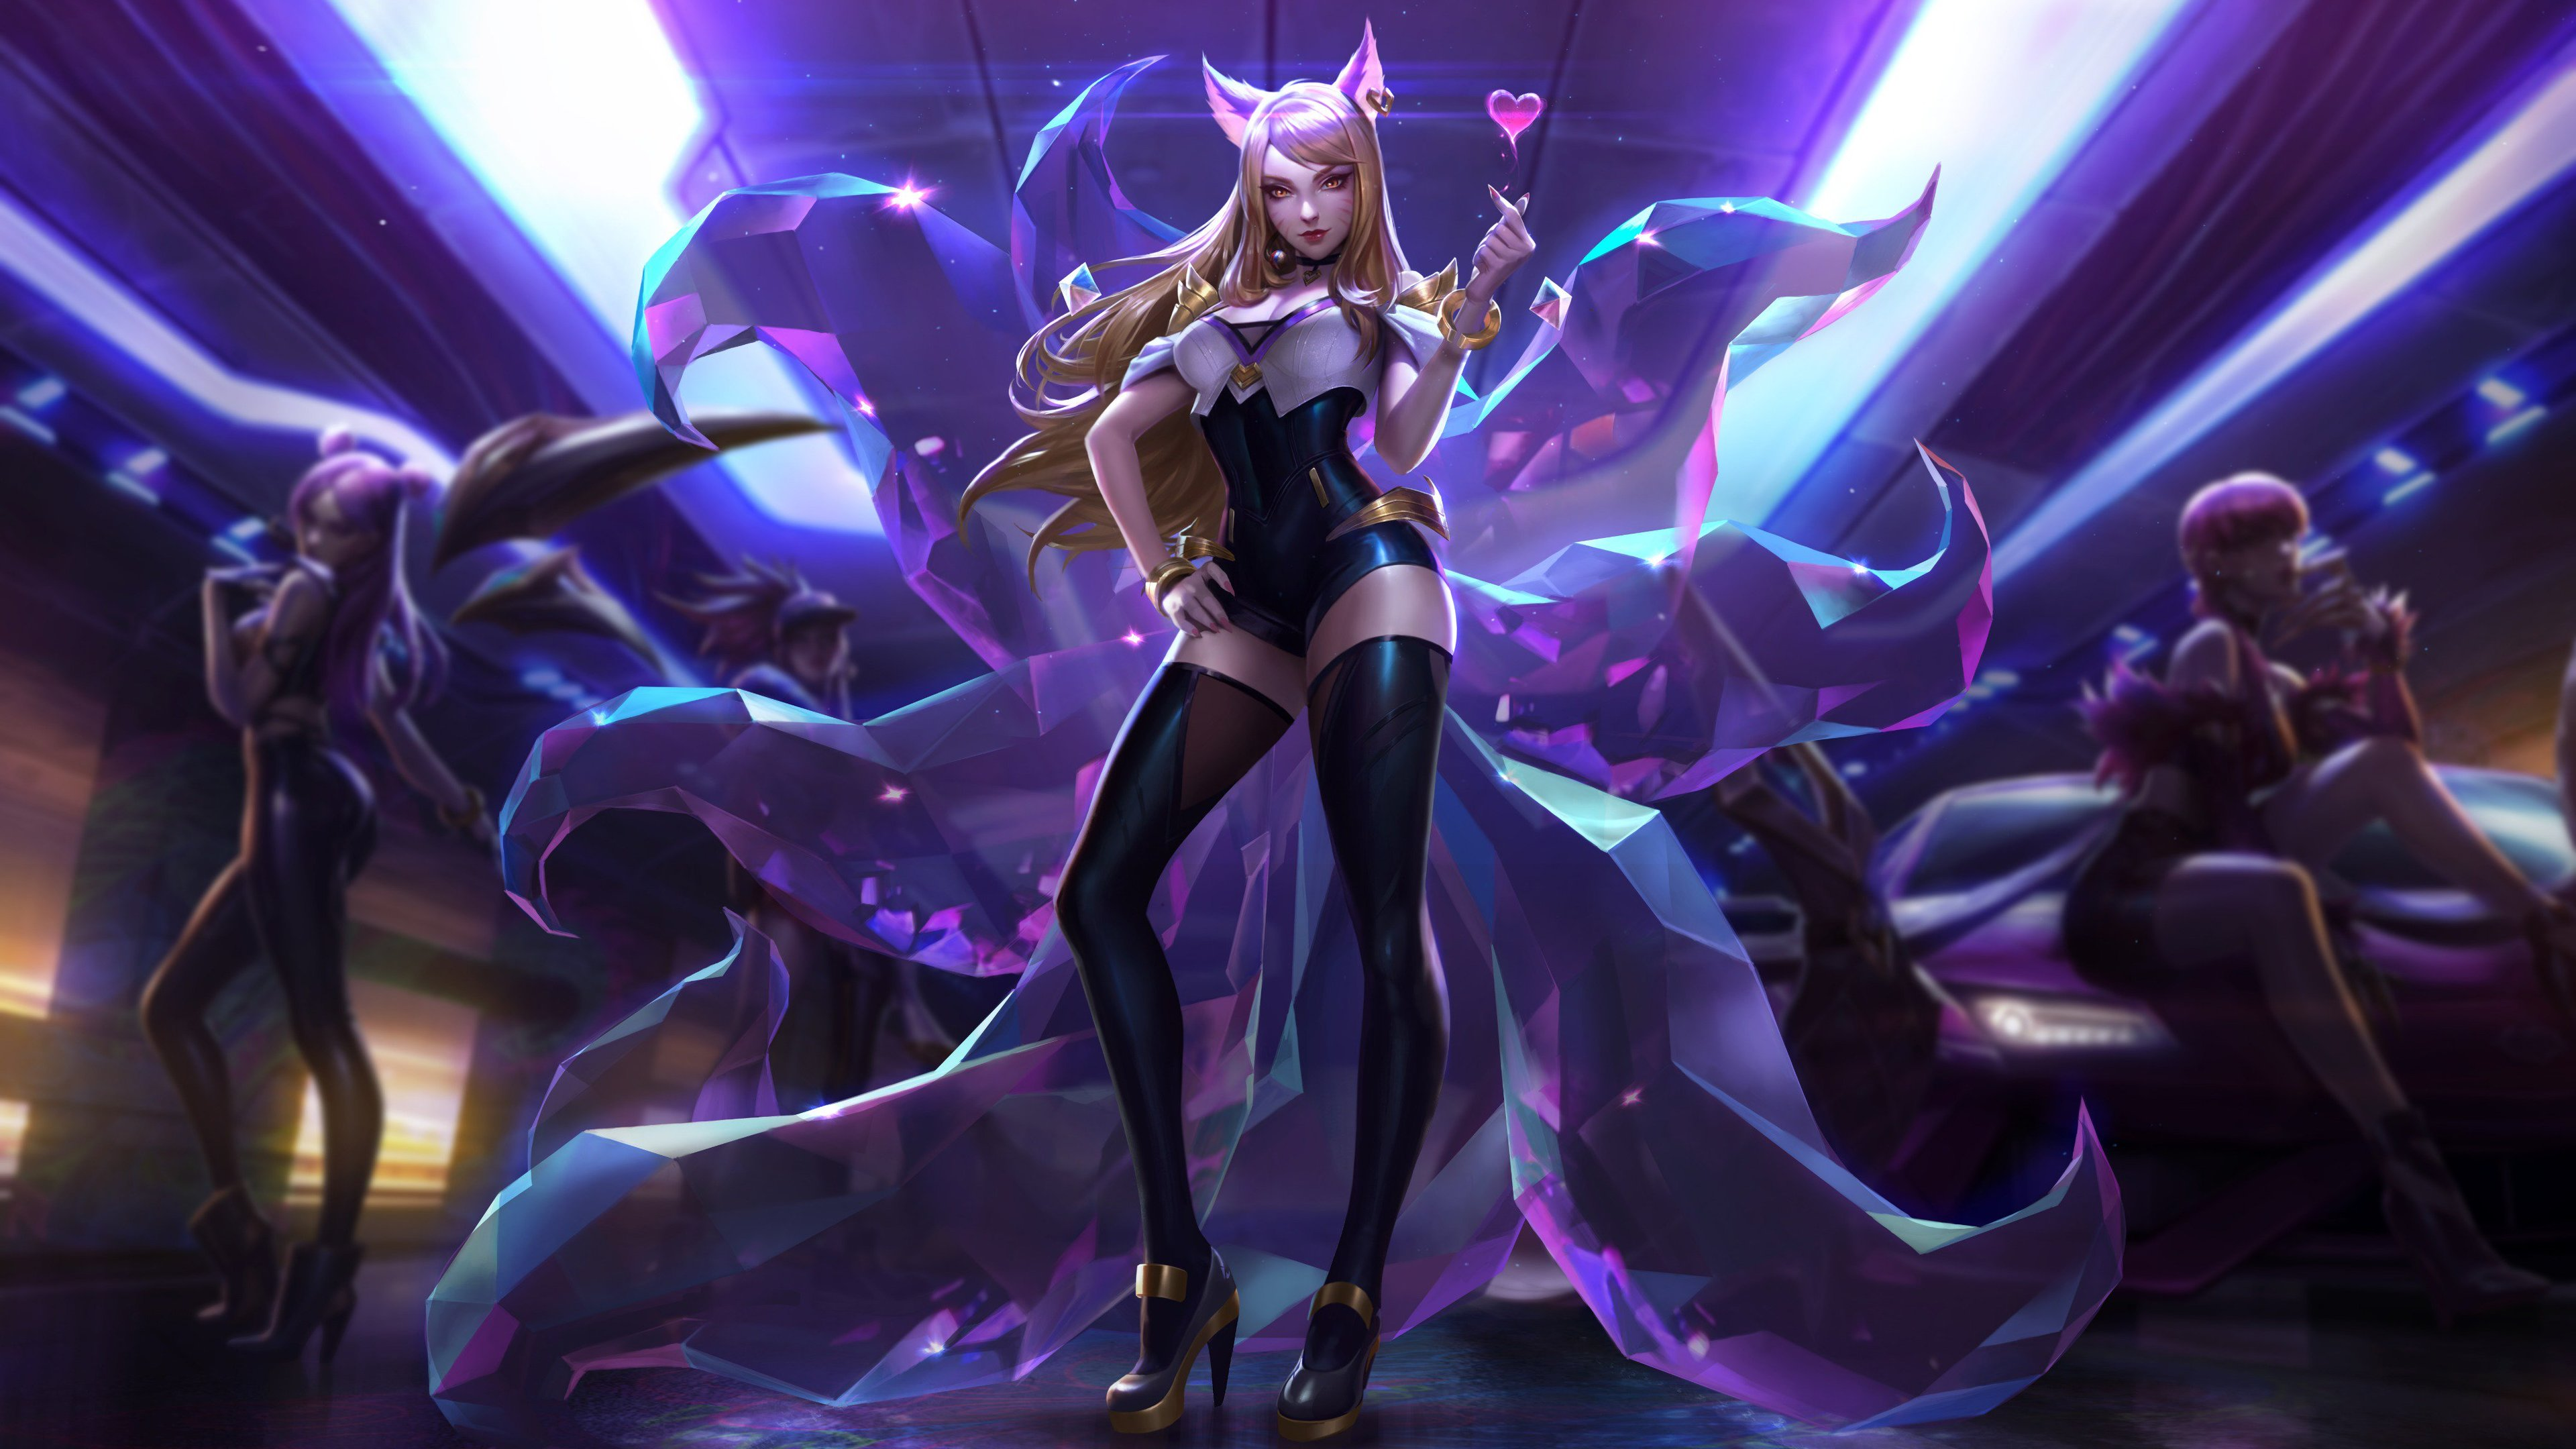 Wallpaper 4k Ahri League Of Legends 4k 4k Wallpapers Games Wallpapers Hd Wallpapers League Of Legends Wallpapers